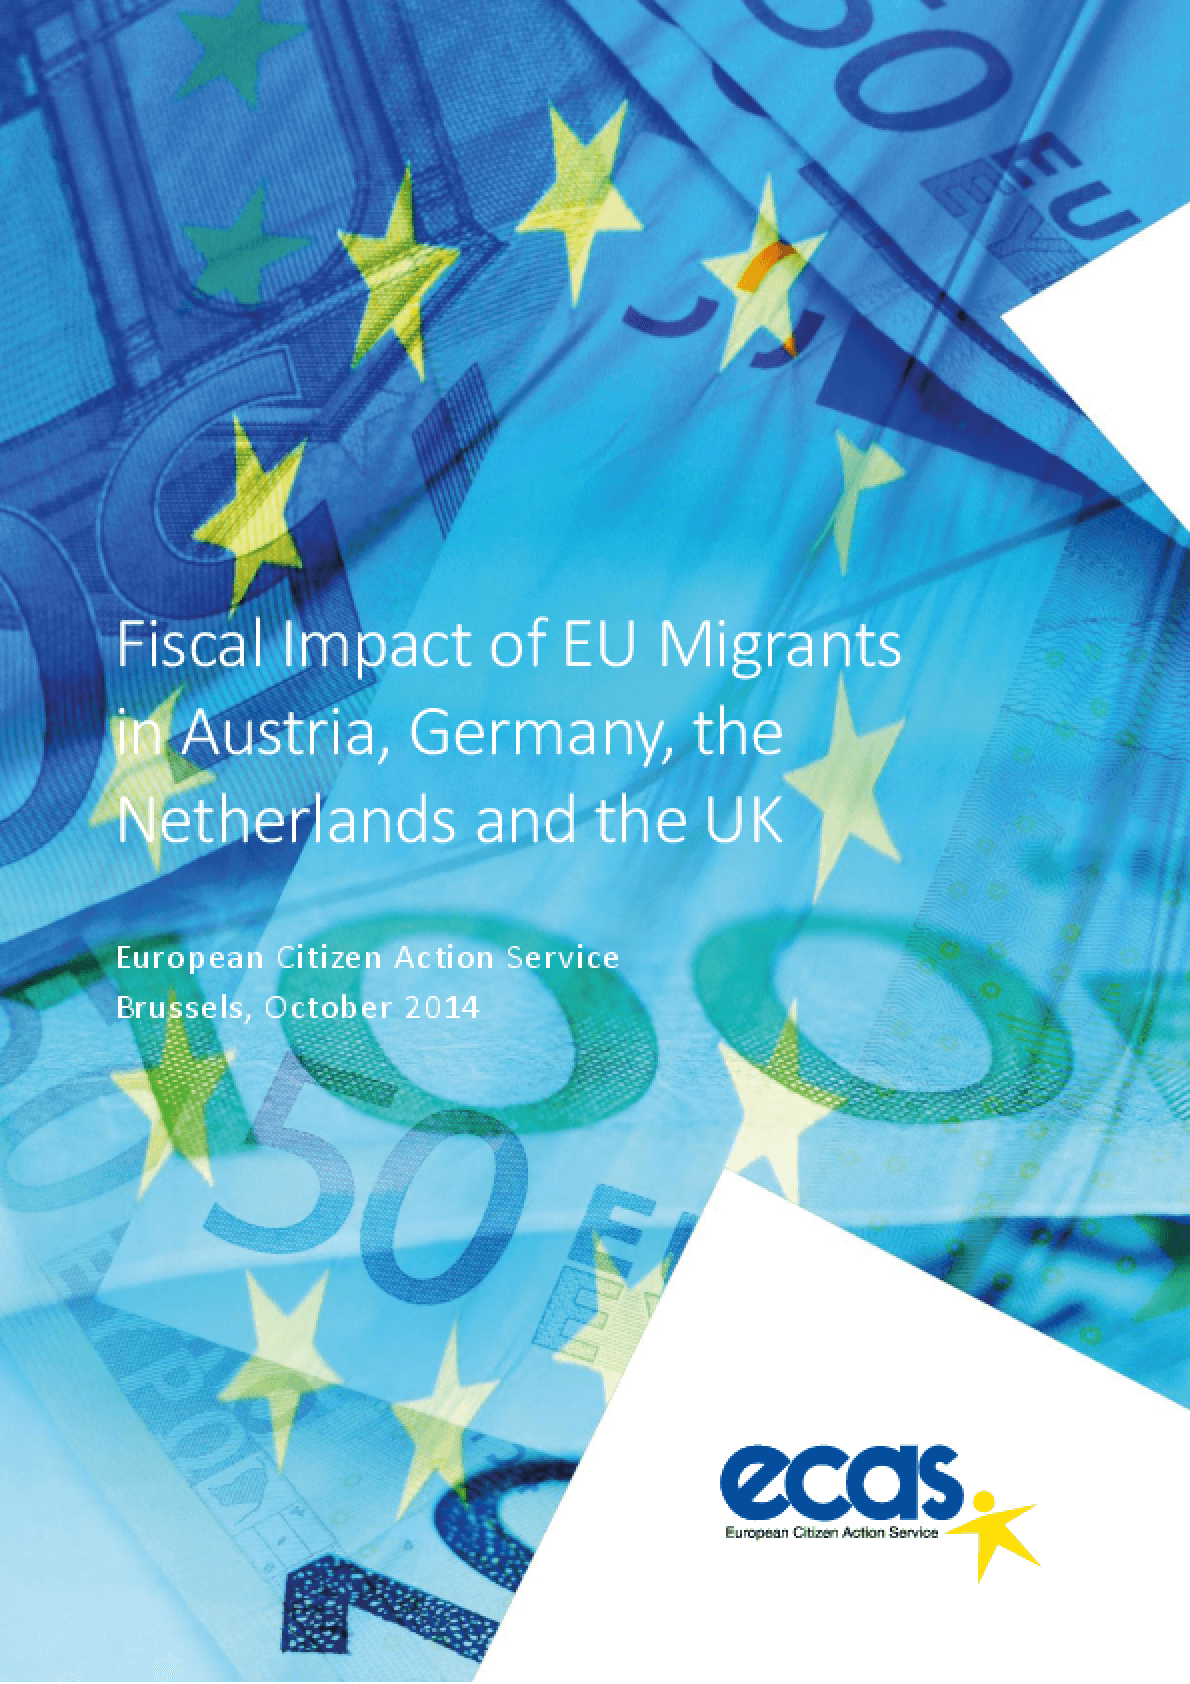 Fiscal Impact on EU Migrants in Austria, Germany, the Netherlands and the UK